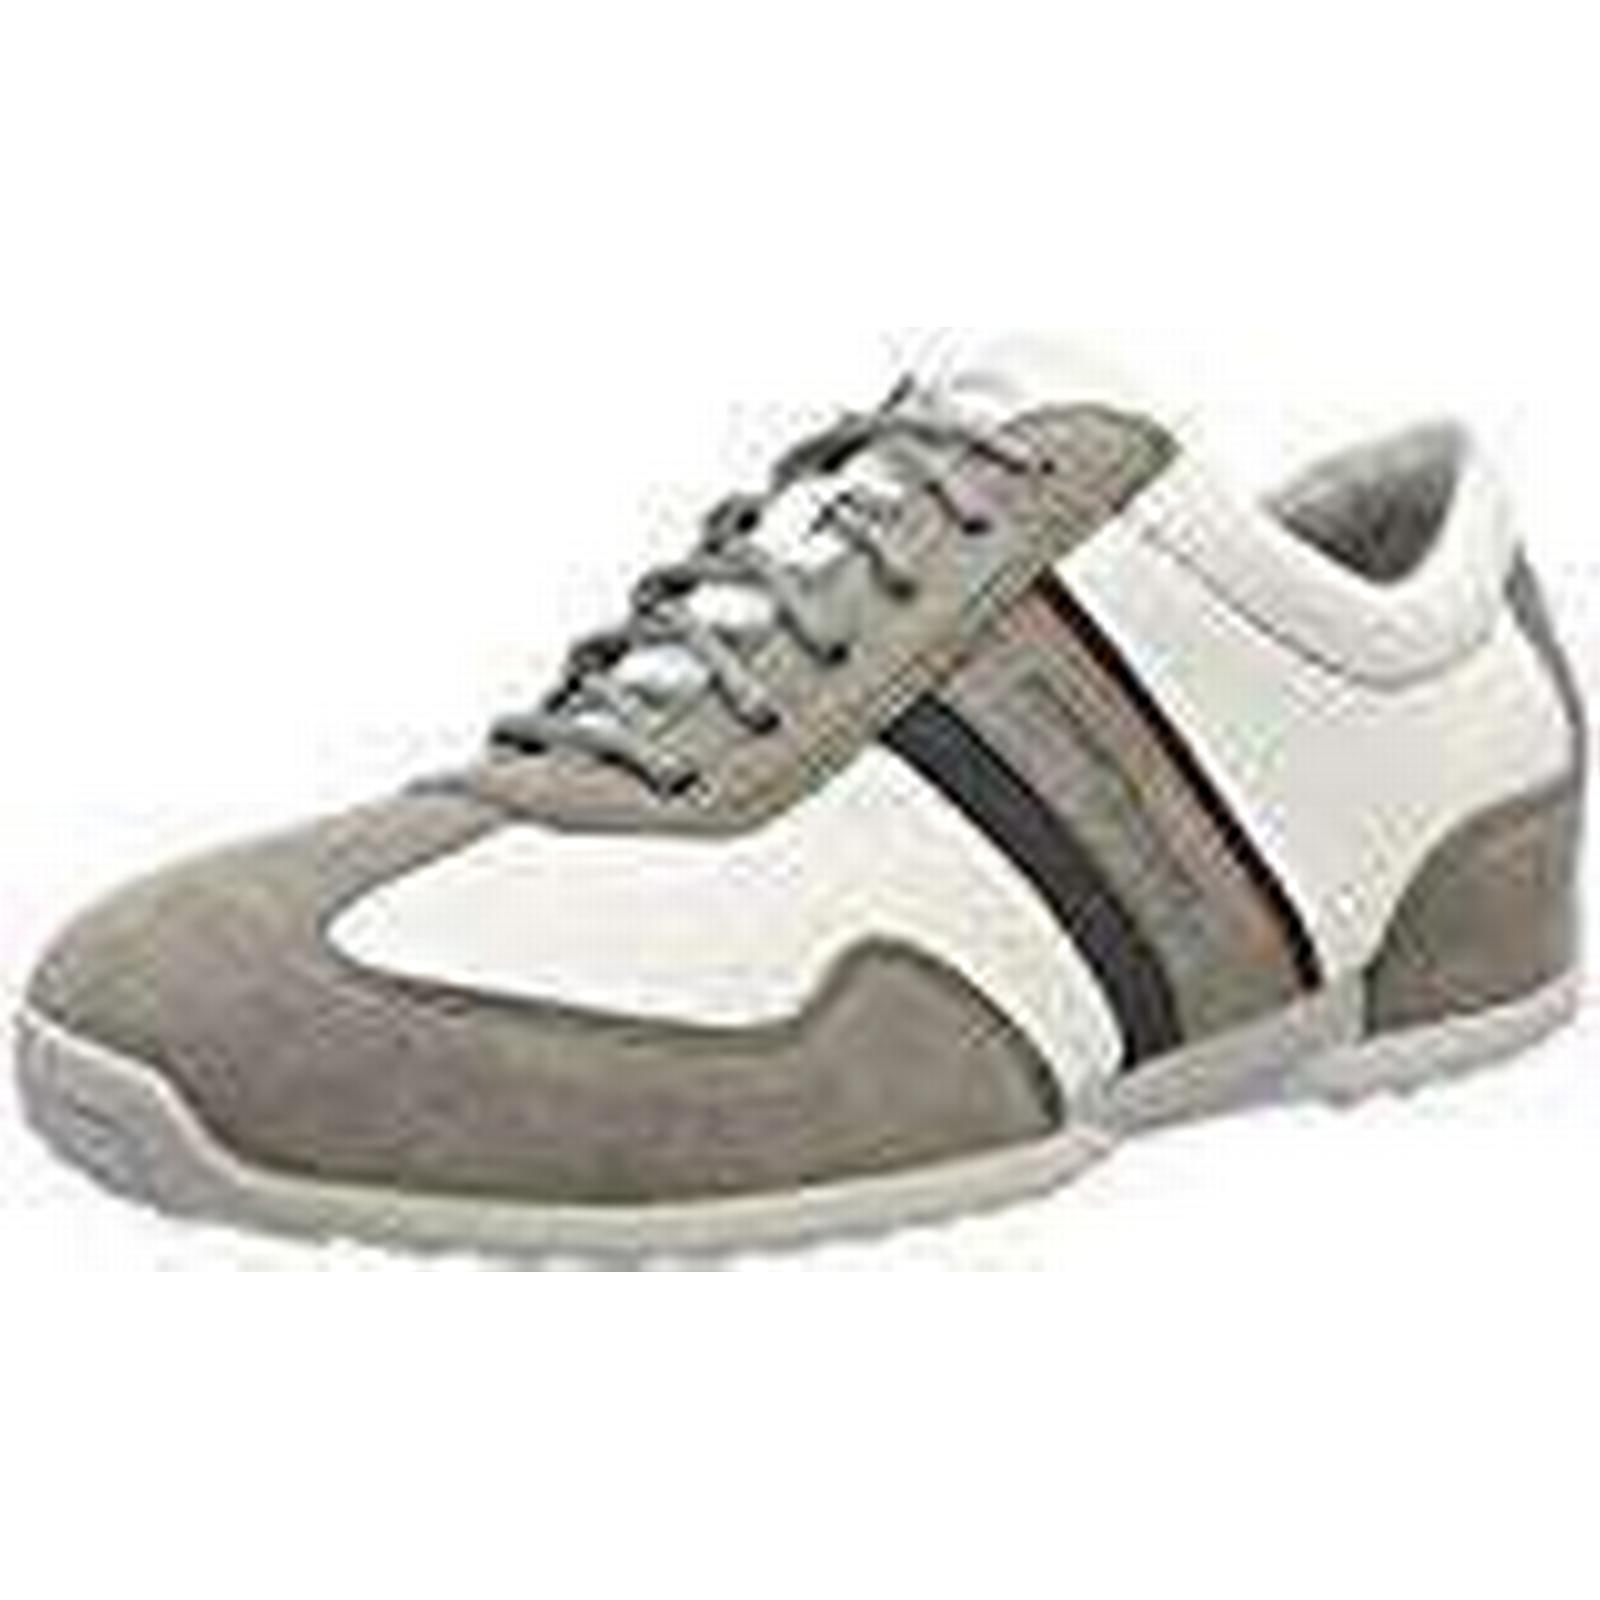 Camel active Men's Space 9 24 Low-Top Sneakers (Midgrey/White/Navy), 9 Space UK 49e757